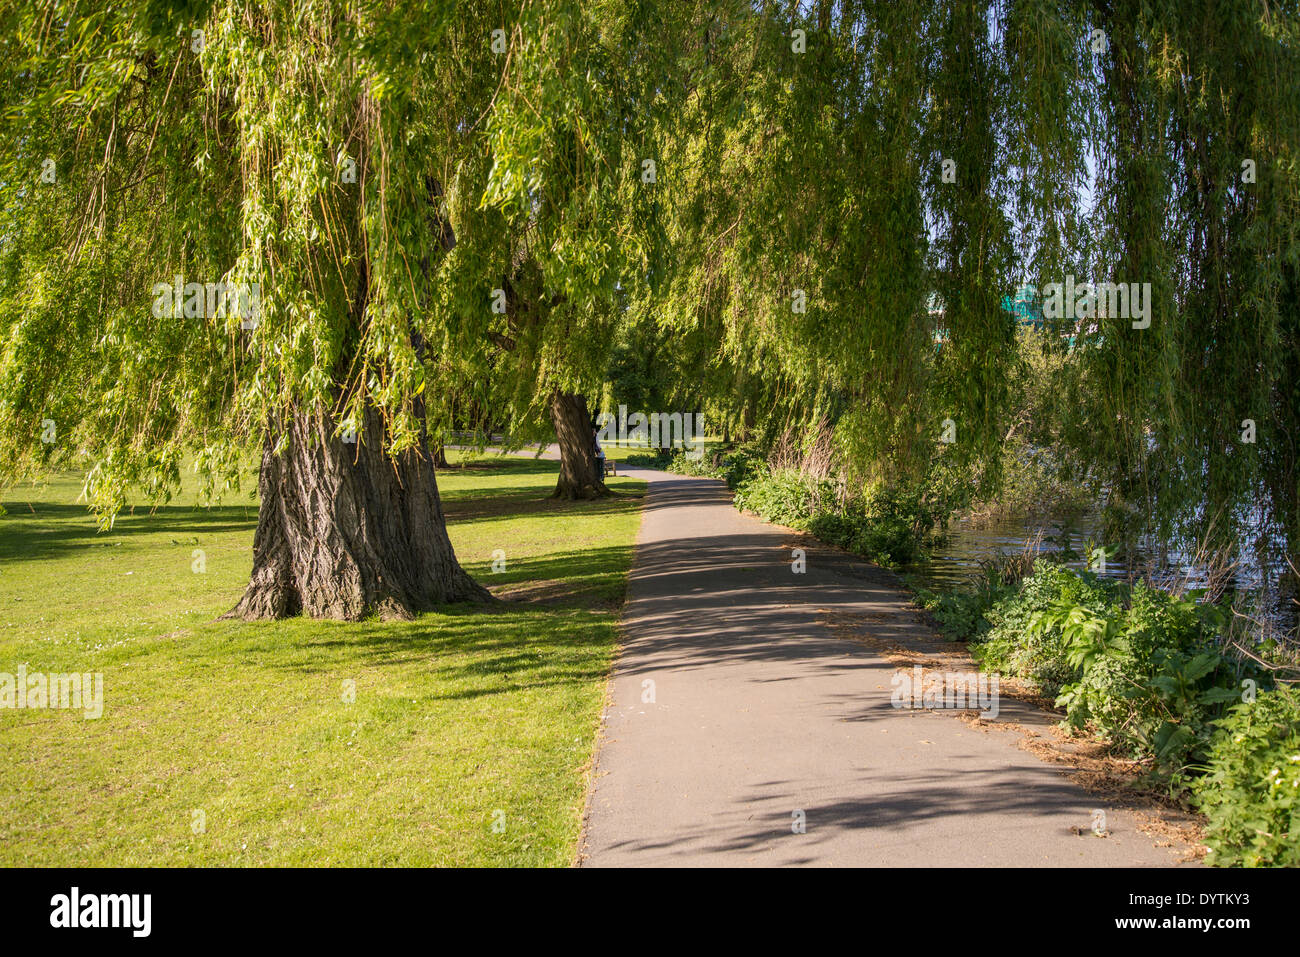 Radnor Gardens Weeping Willows, Strawberry Hill, Borough of Richmond, London, UK - Stock Image